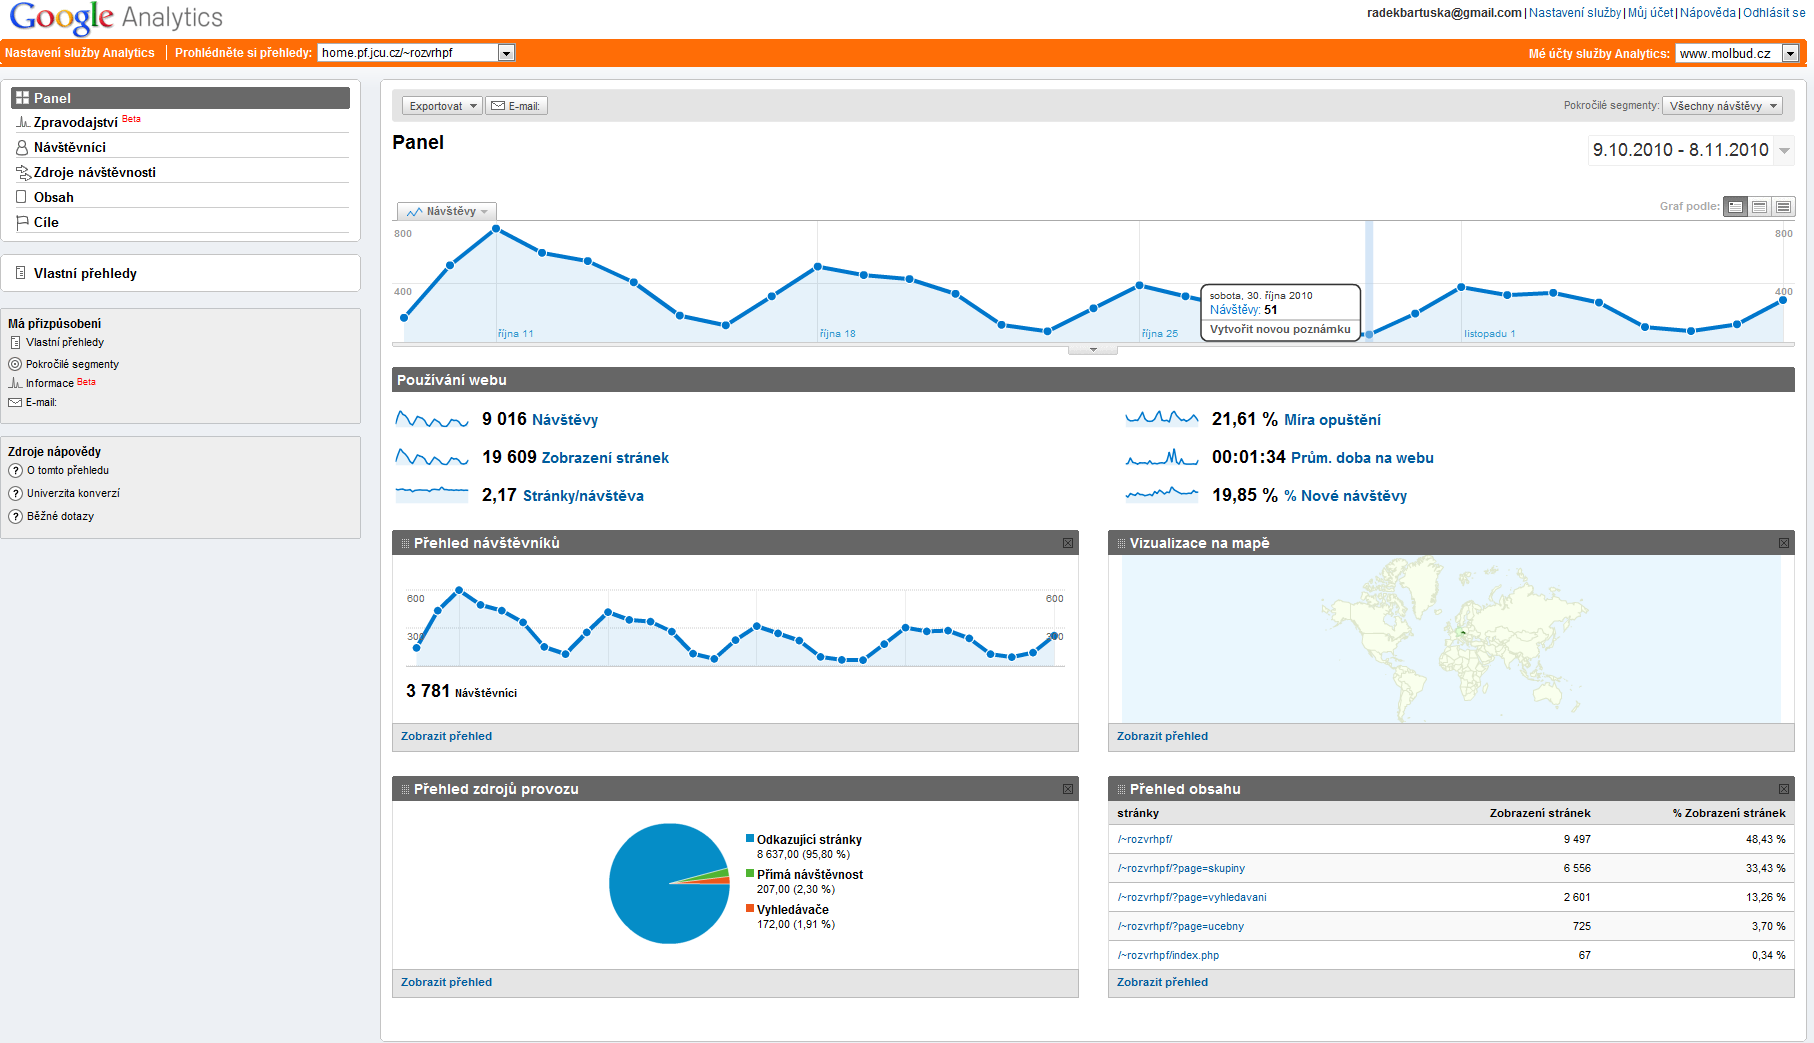 Co je Google Analytics?